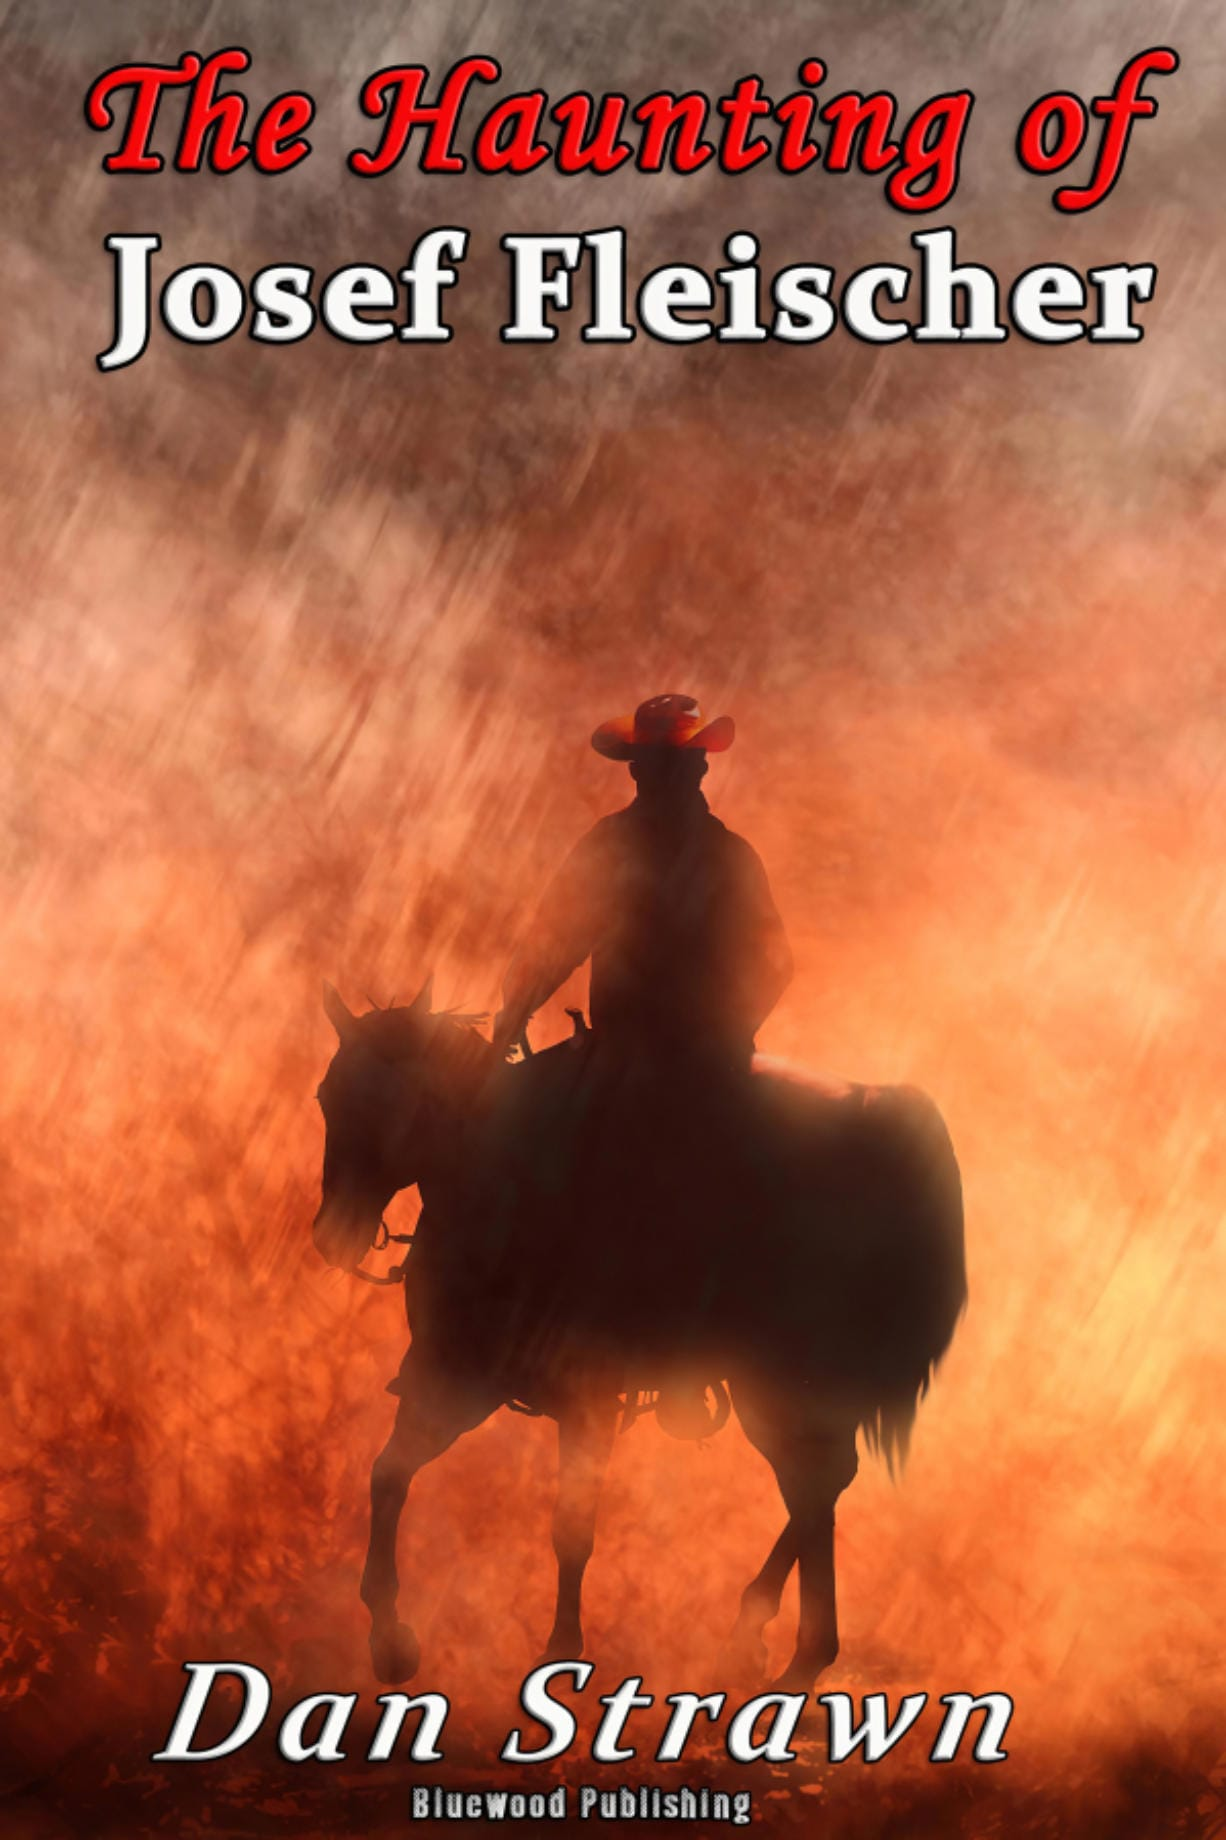 """The Haunting of Josef Fleischer"" is available as an e-book via Amazon."